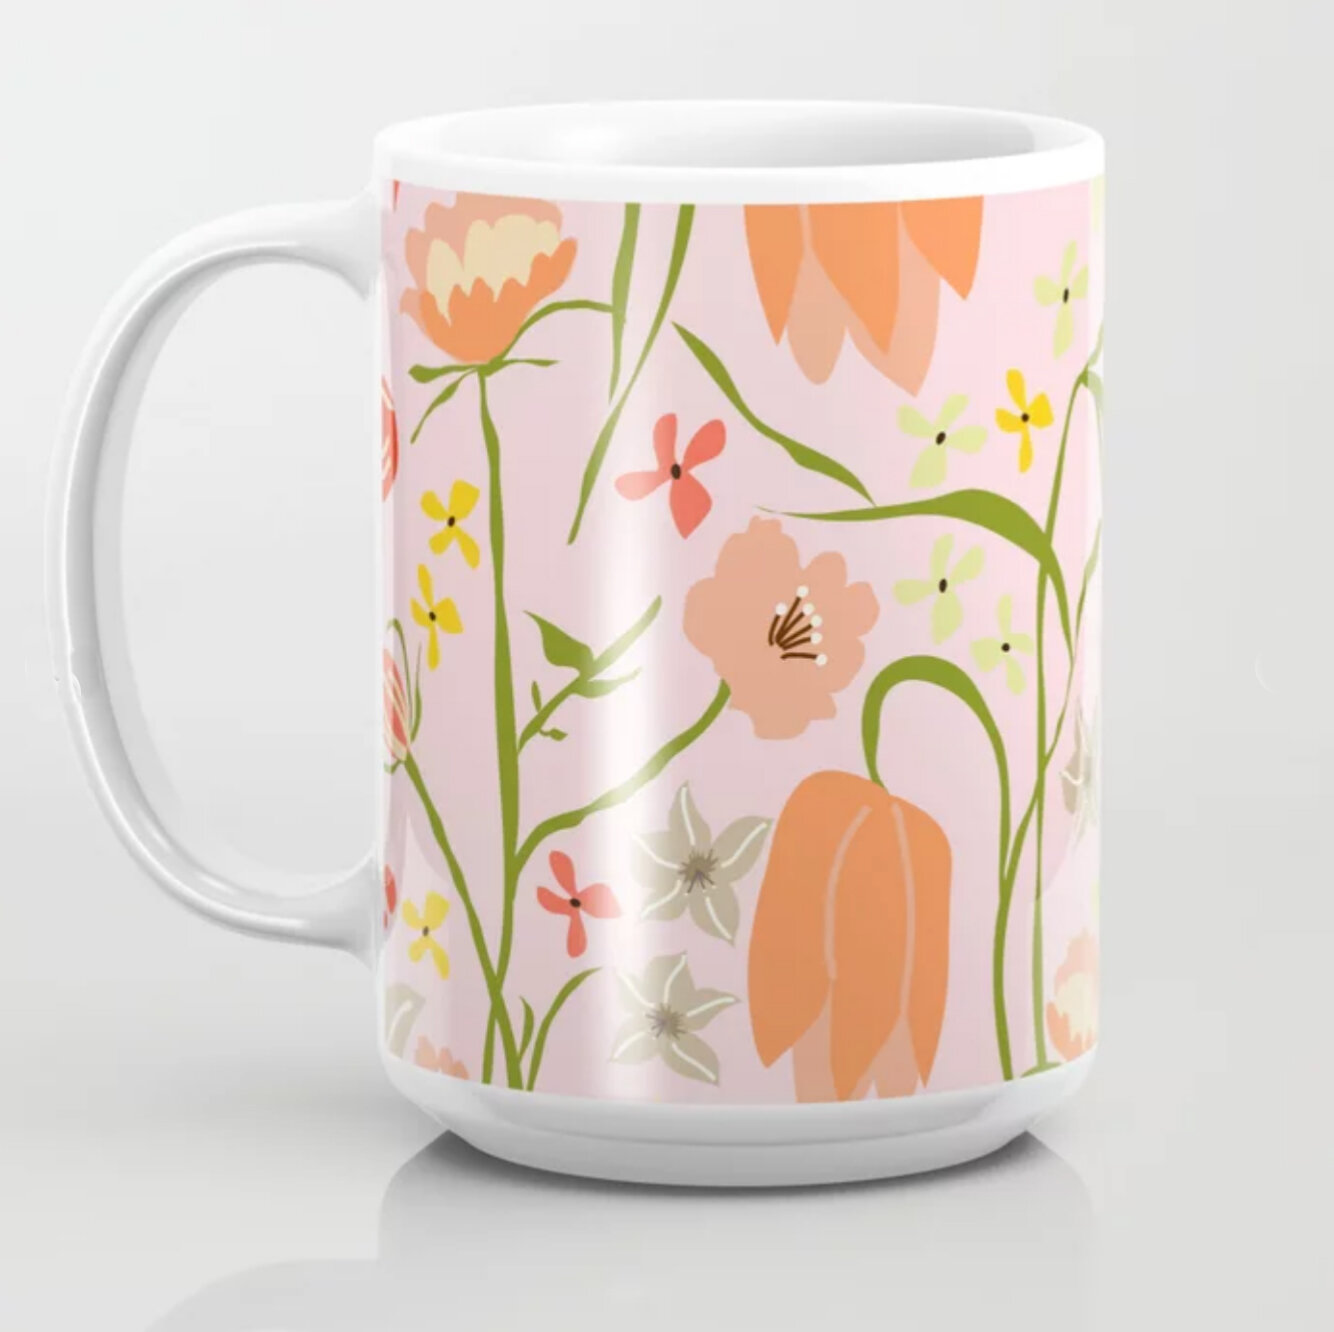 Wildflowers-pink-mug-gingerdeverell.jpg